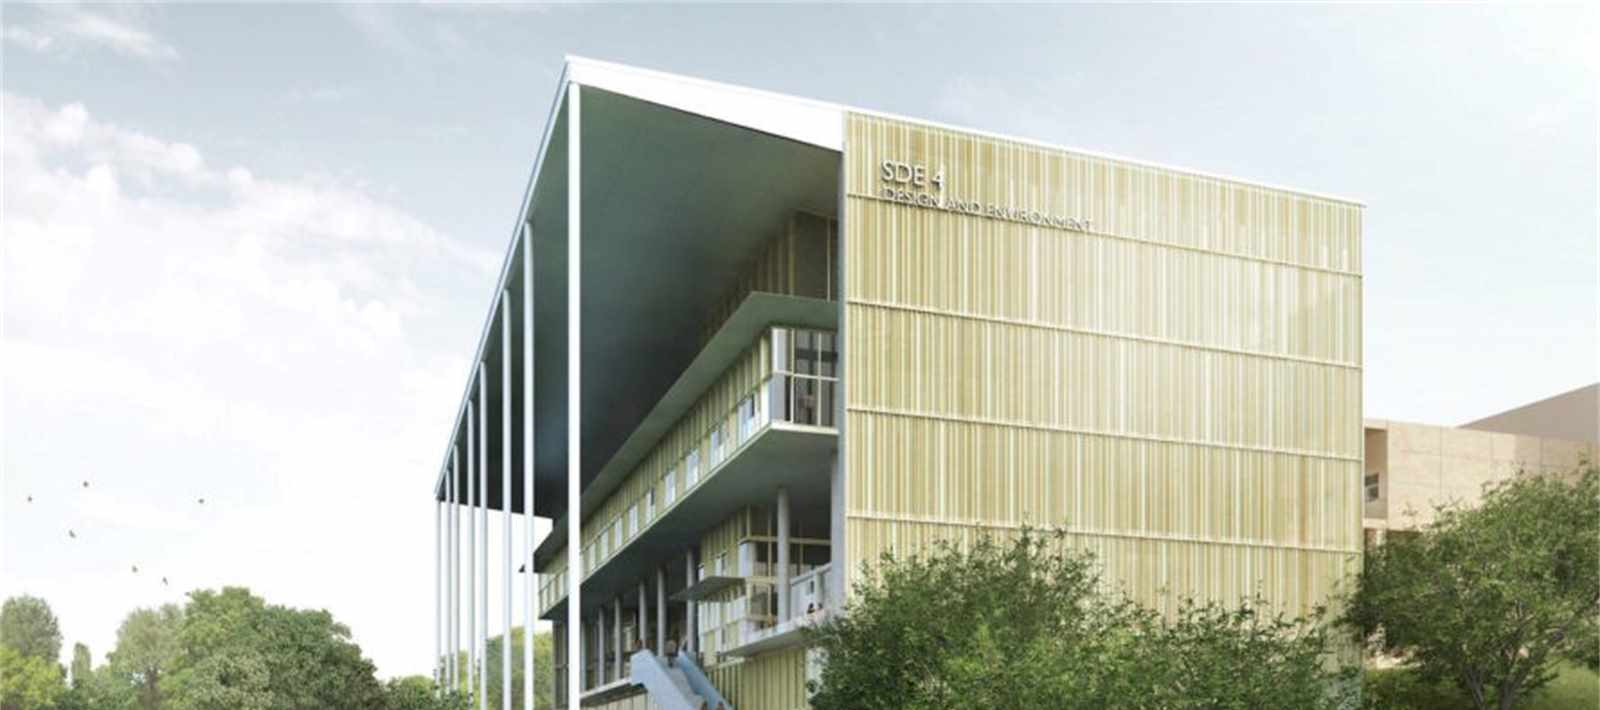 The new School of Design & Environment building at the National University of Singapore …